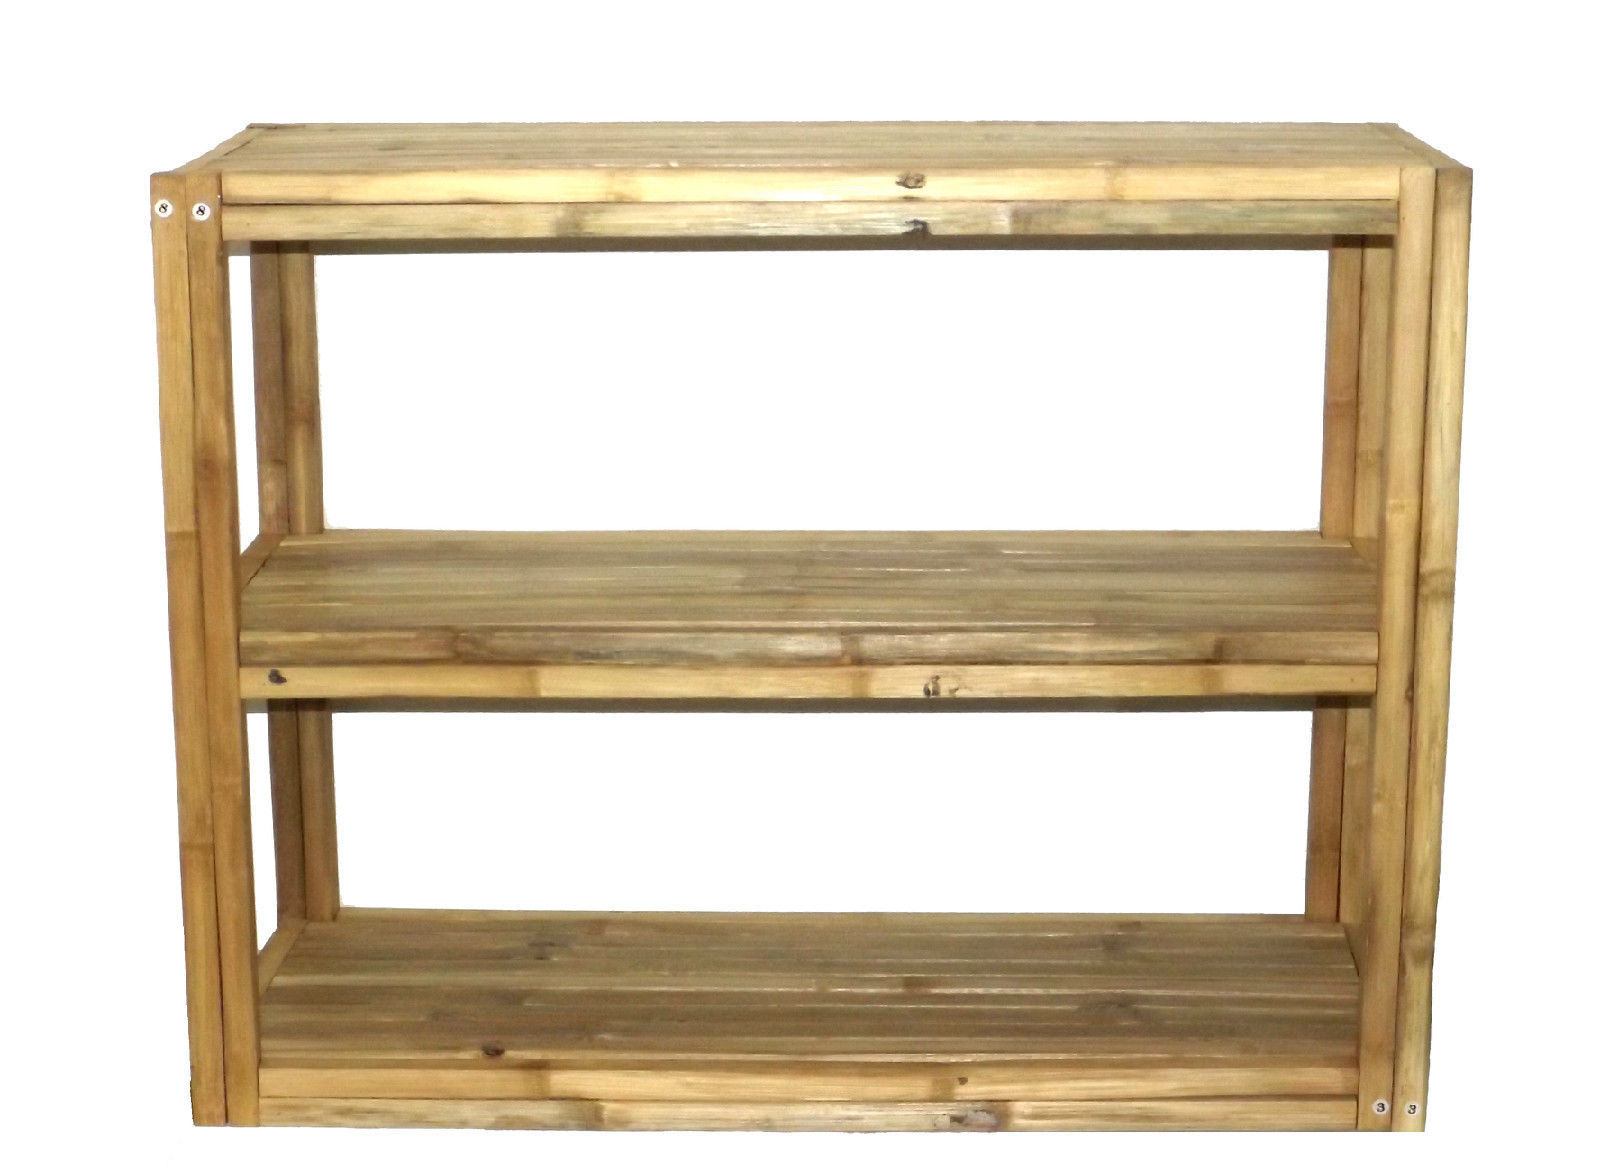 bamboo tiki 3 tier square bamboo 35 5 inch patio rectangular shelf tv stand entertainment. Black Bedroom Furniture Sets. Home Design Ideas